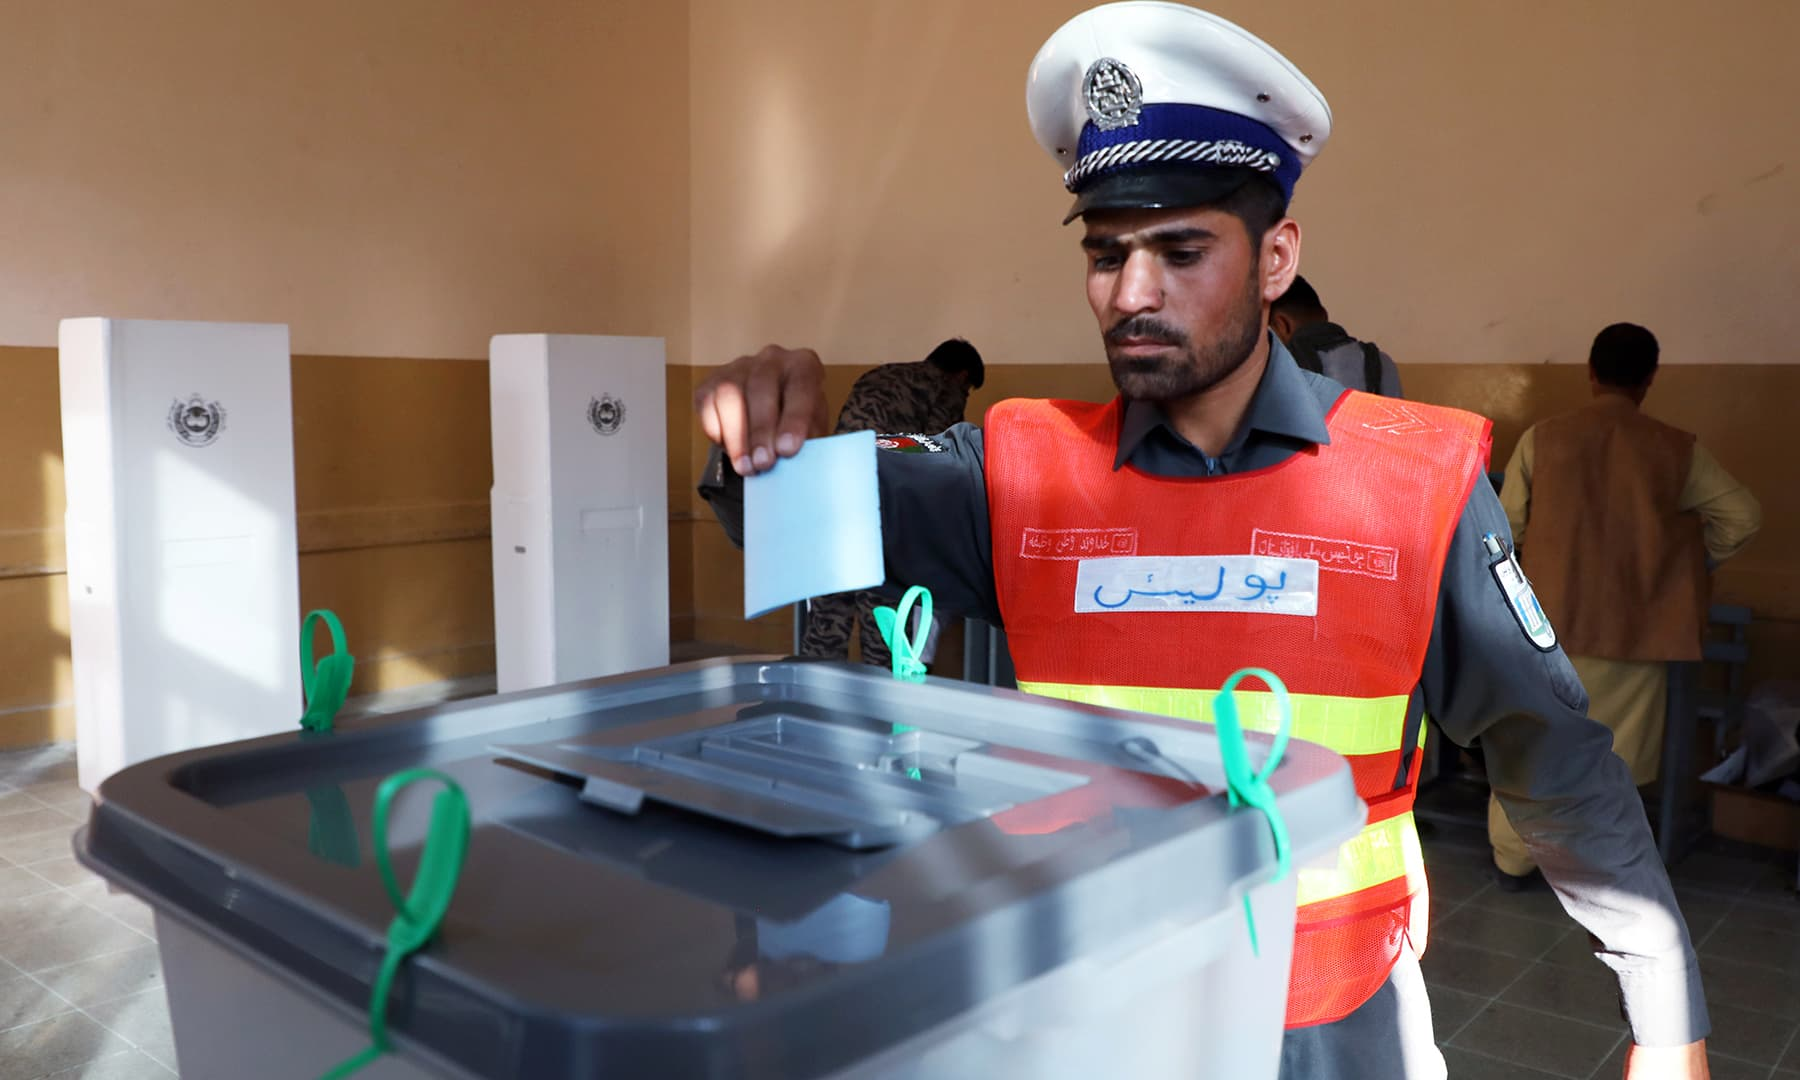 An Afghan policeman casts his vote at a polling station in Kabul. — Reuters